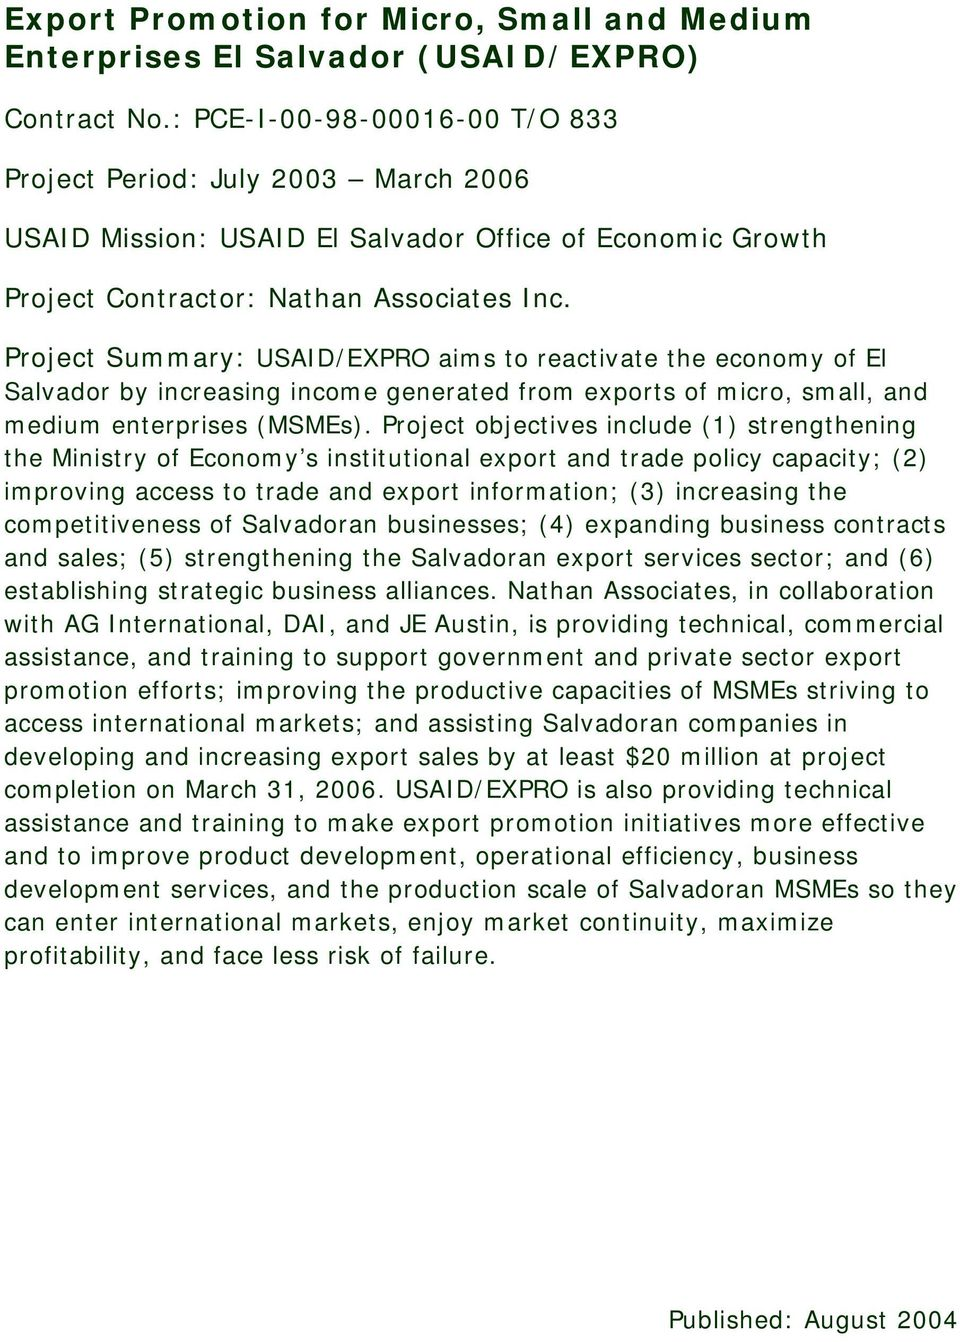 Project Summary: USAID/EXPRO aims to reactivate the economy of El Salvador by increasing income generated from exports of micro, small, and medium enterprises (MSMEs).